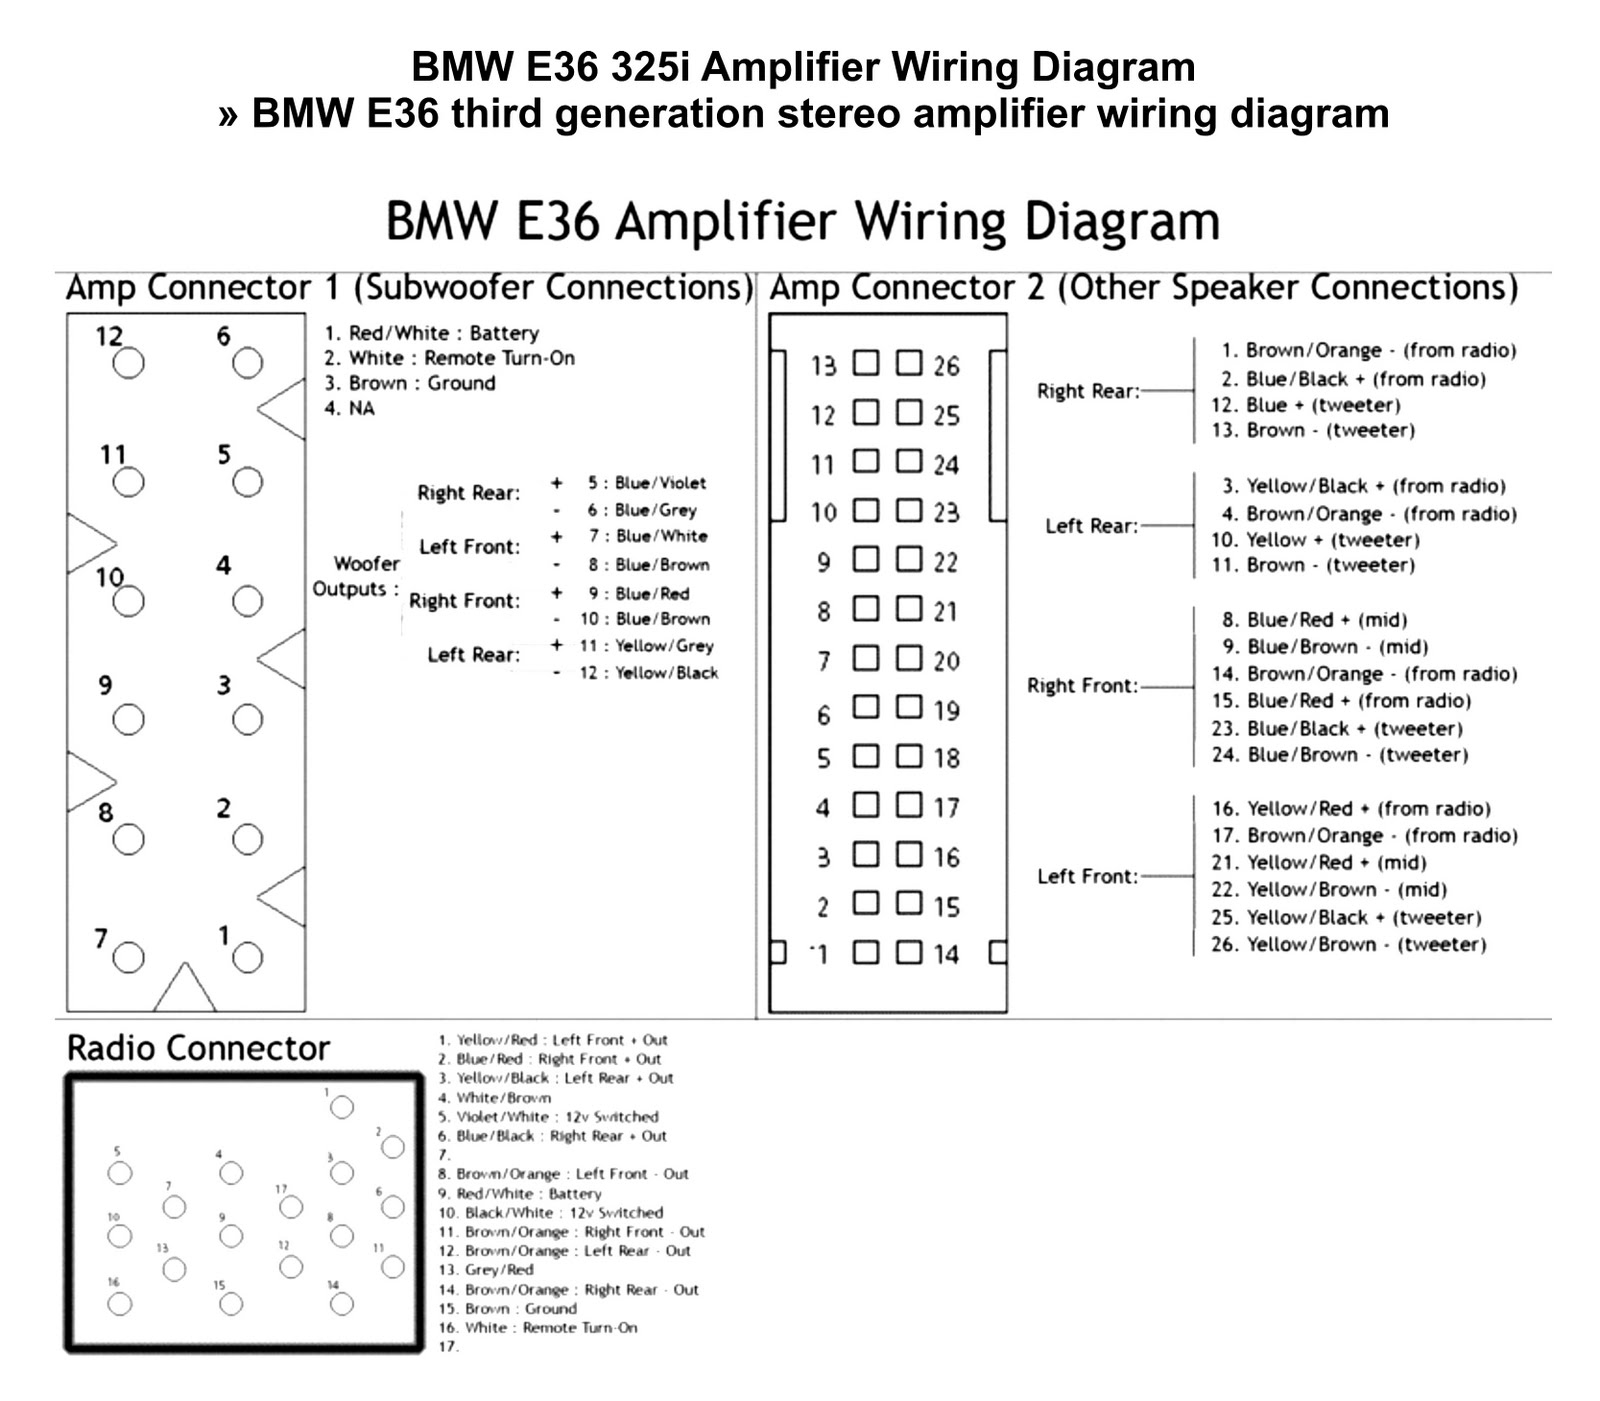 Surprising BMW E90 Battery Wiring Diagram Images - Best Image Wiring ...